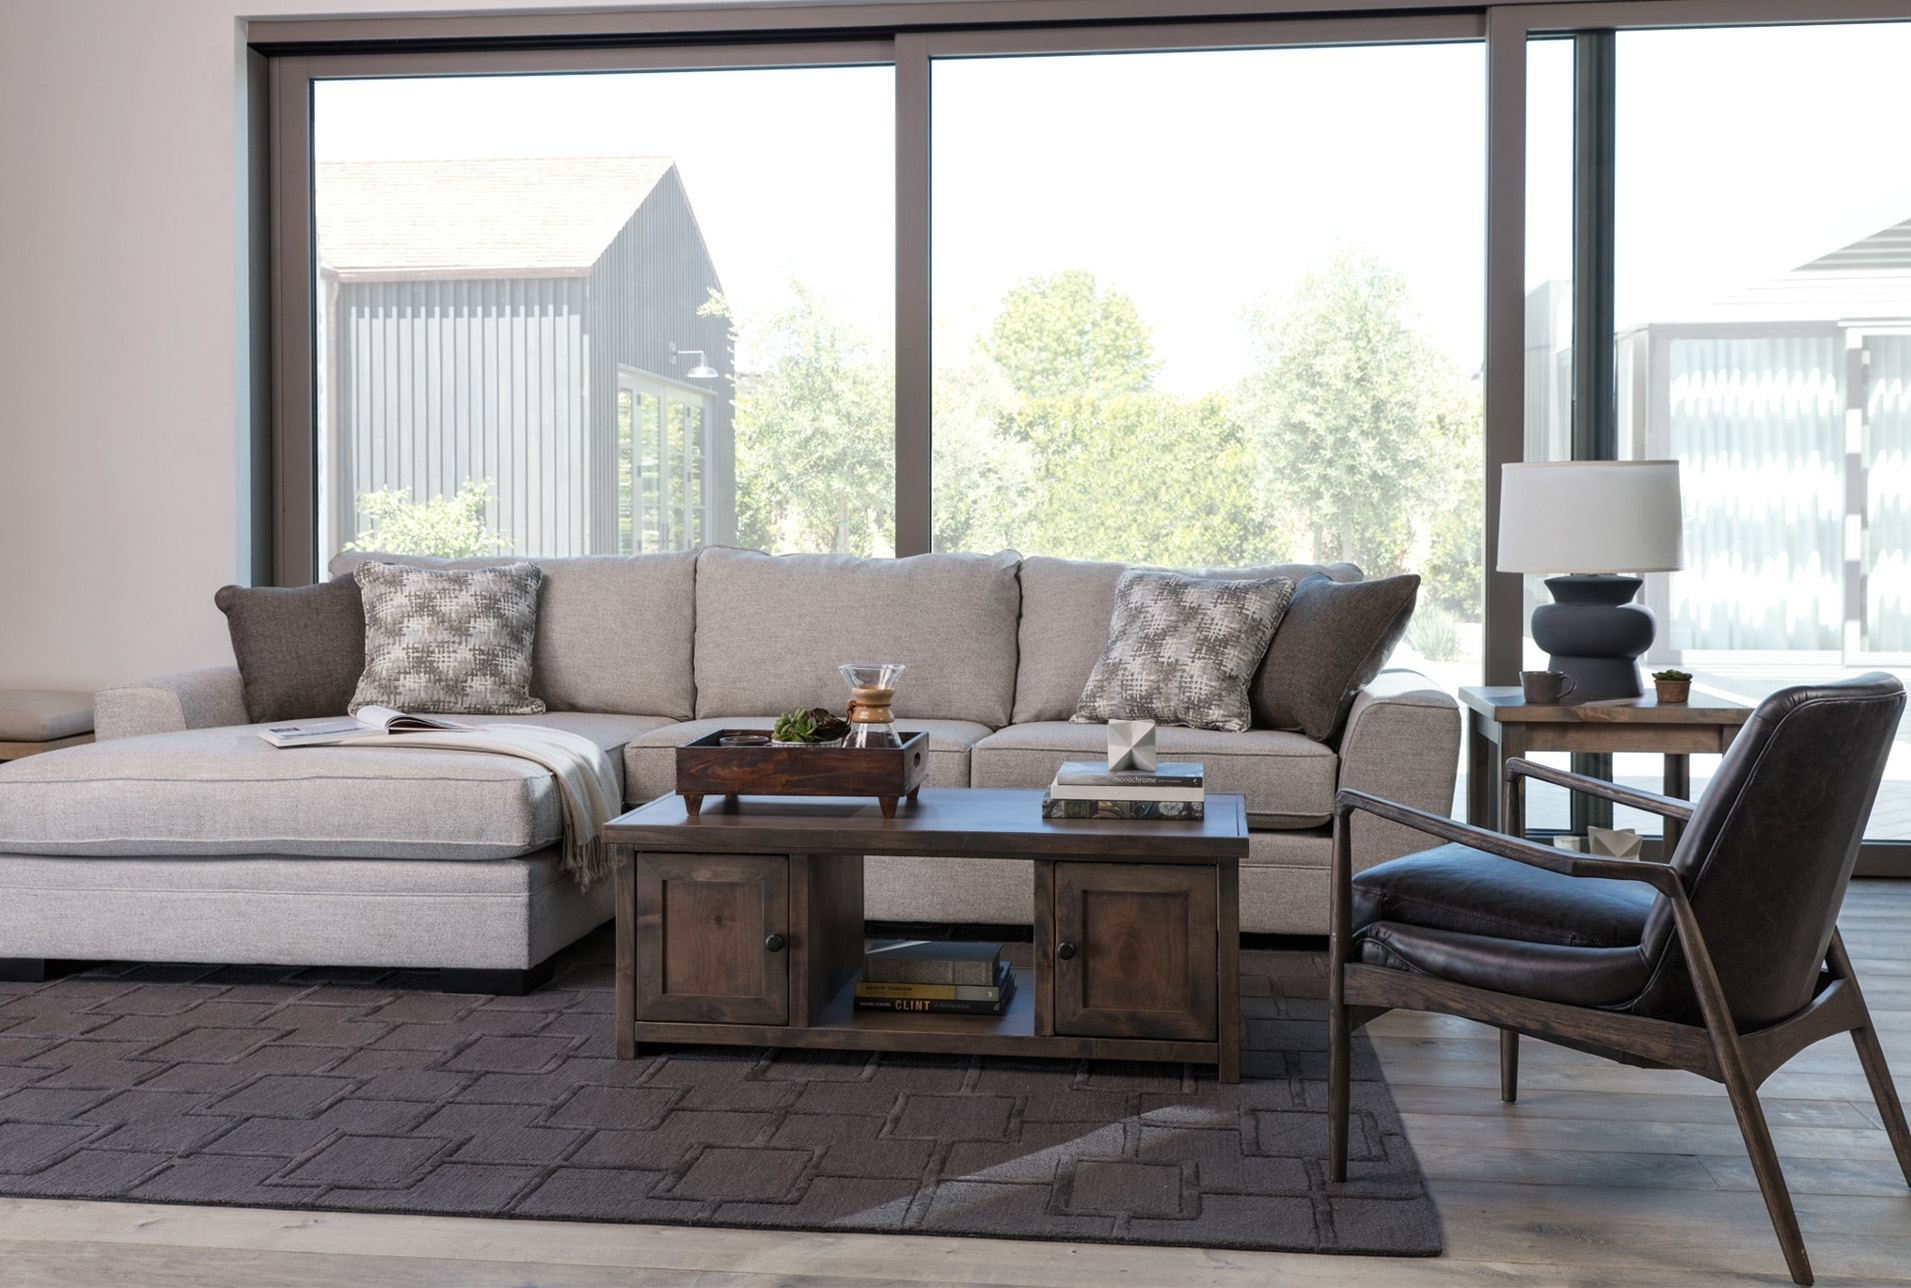 Delano 2 Piece Sectional W/raf Oversized Chaise | Products with Delano 2 Piece Sectionals With Raf Oversized Chaise (Image 17 of 30)